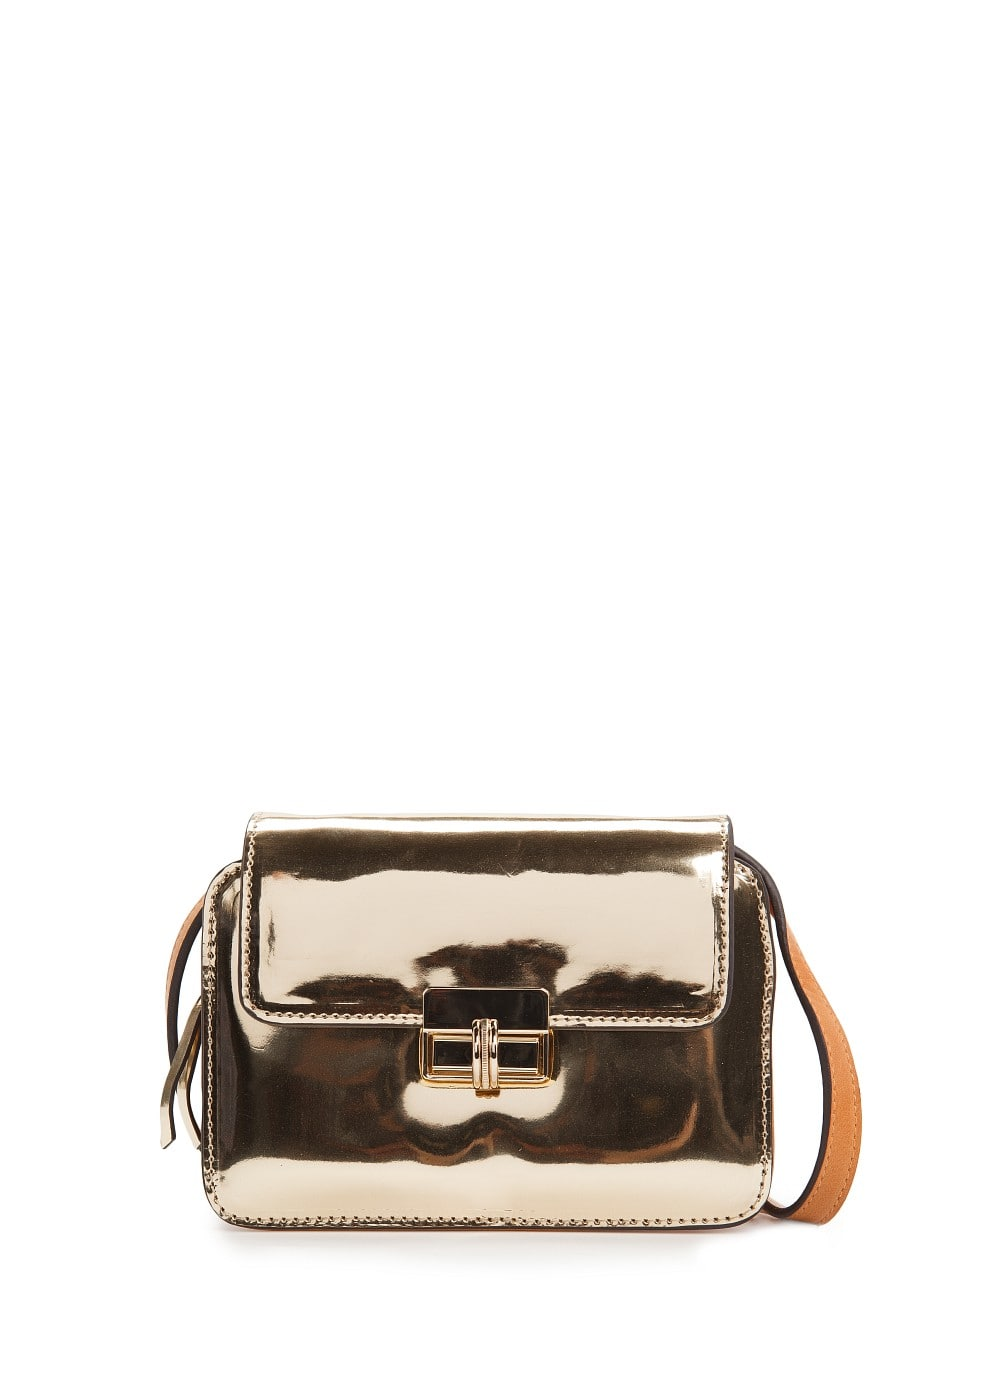 Metallic small shoulder bag